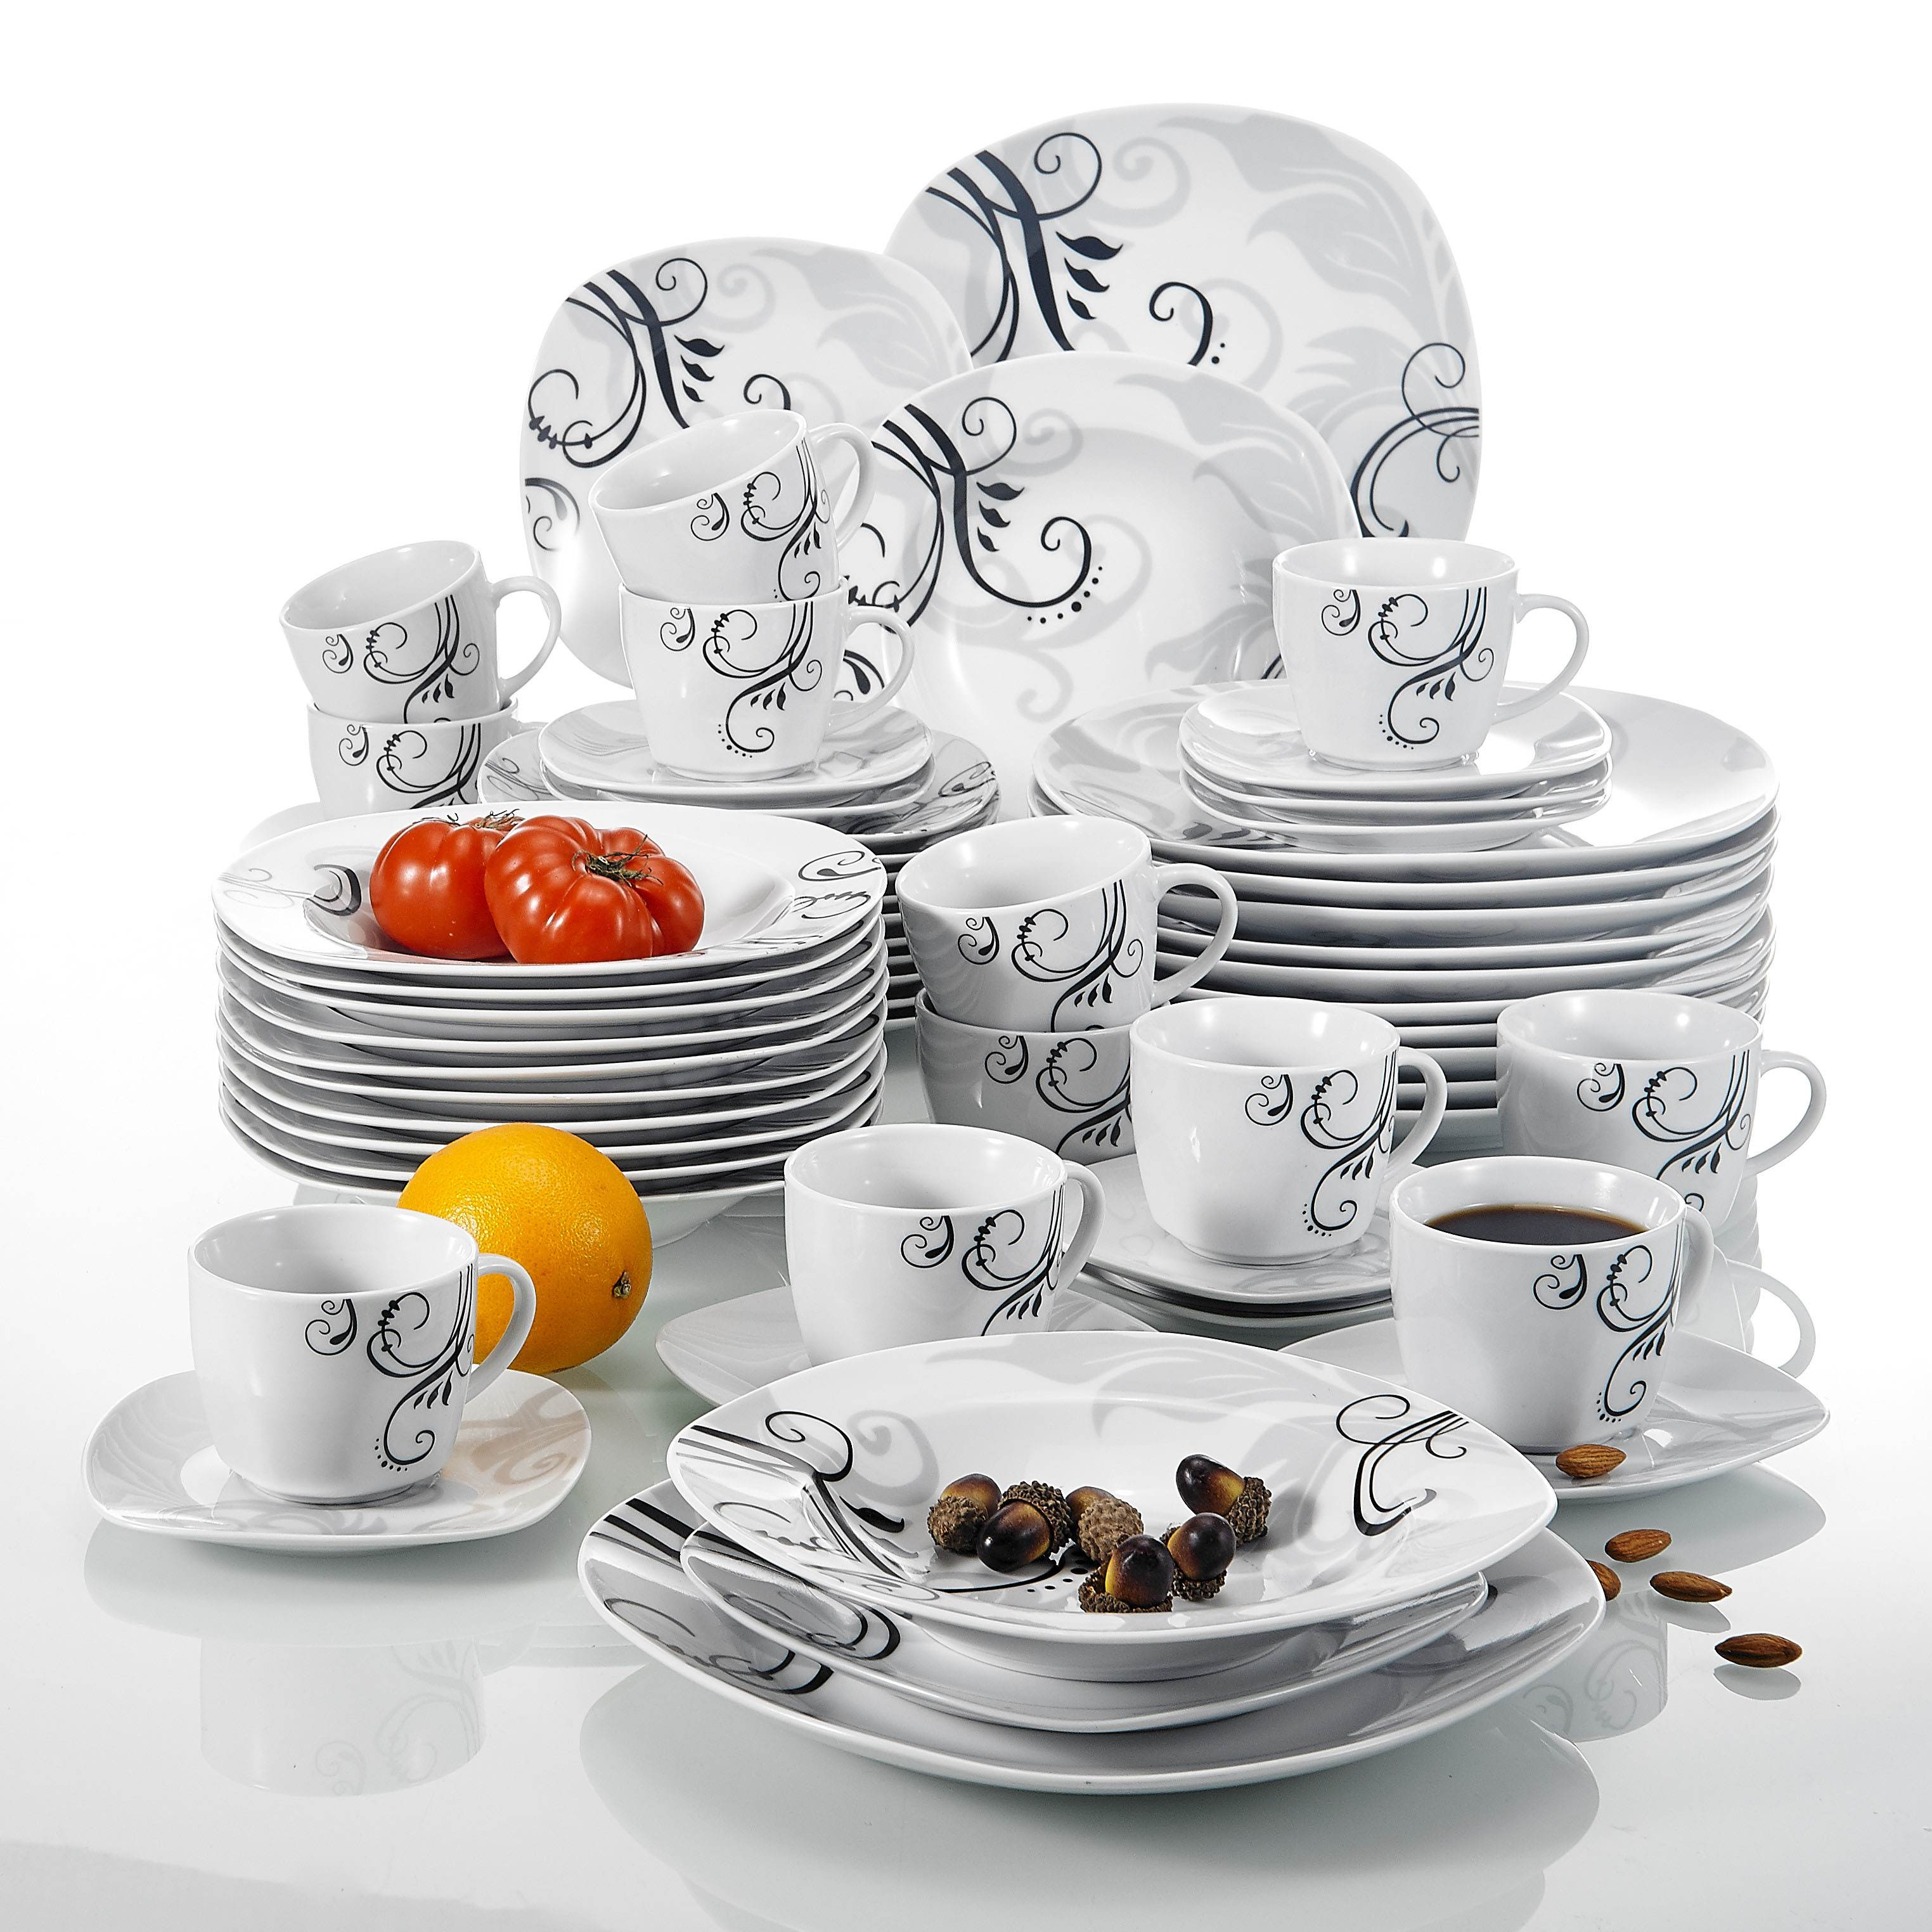 VEWEET ZOEY 60-Piece Black Decals Porcelain Ceramic Dinner Combi-Set With Dessert Plate Soup Plate Dinner Plate Cup Saucer